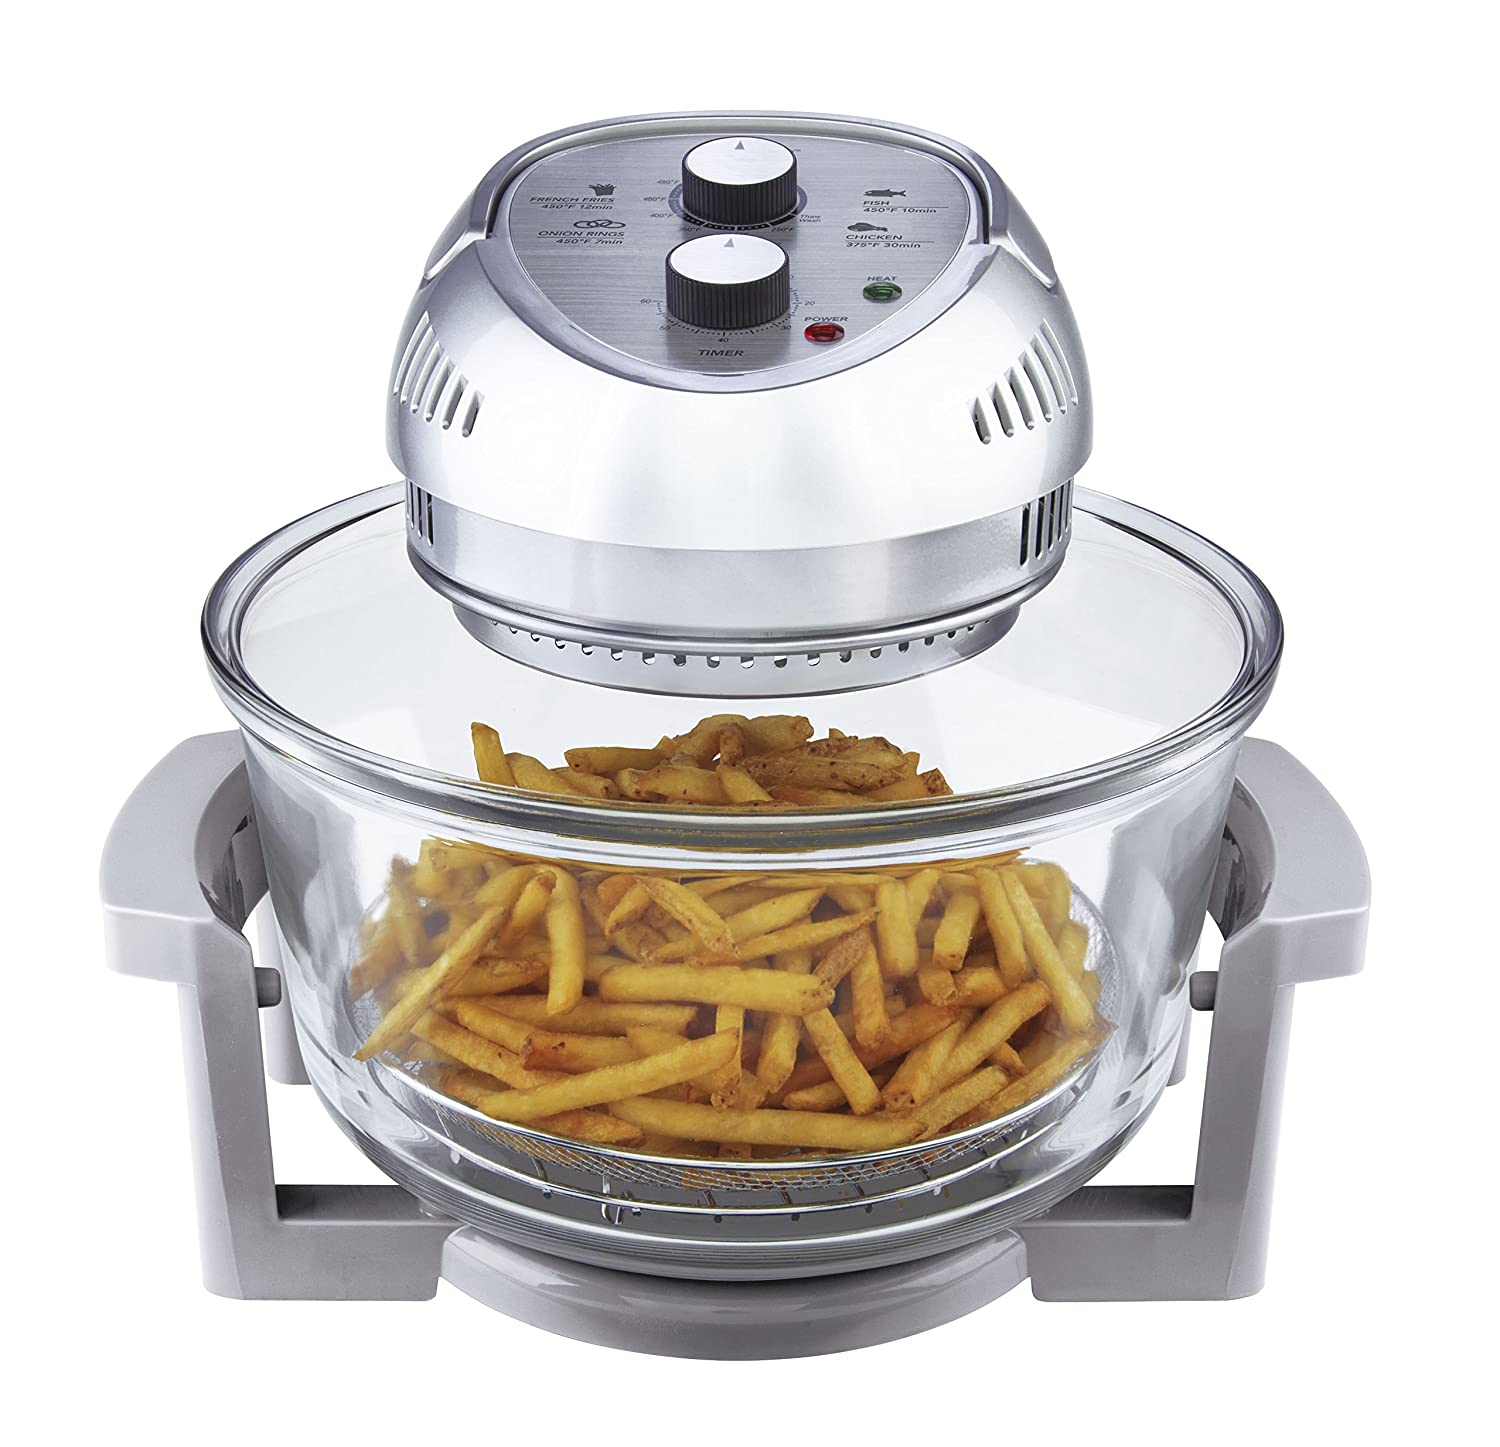 Amazon.com: Big Boss Oil Less Air Fryer, 16 Quart, 1300 Watt, Silver: Deep  Fryers: Kitchen U0026 Dining